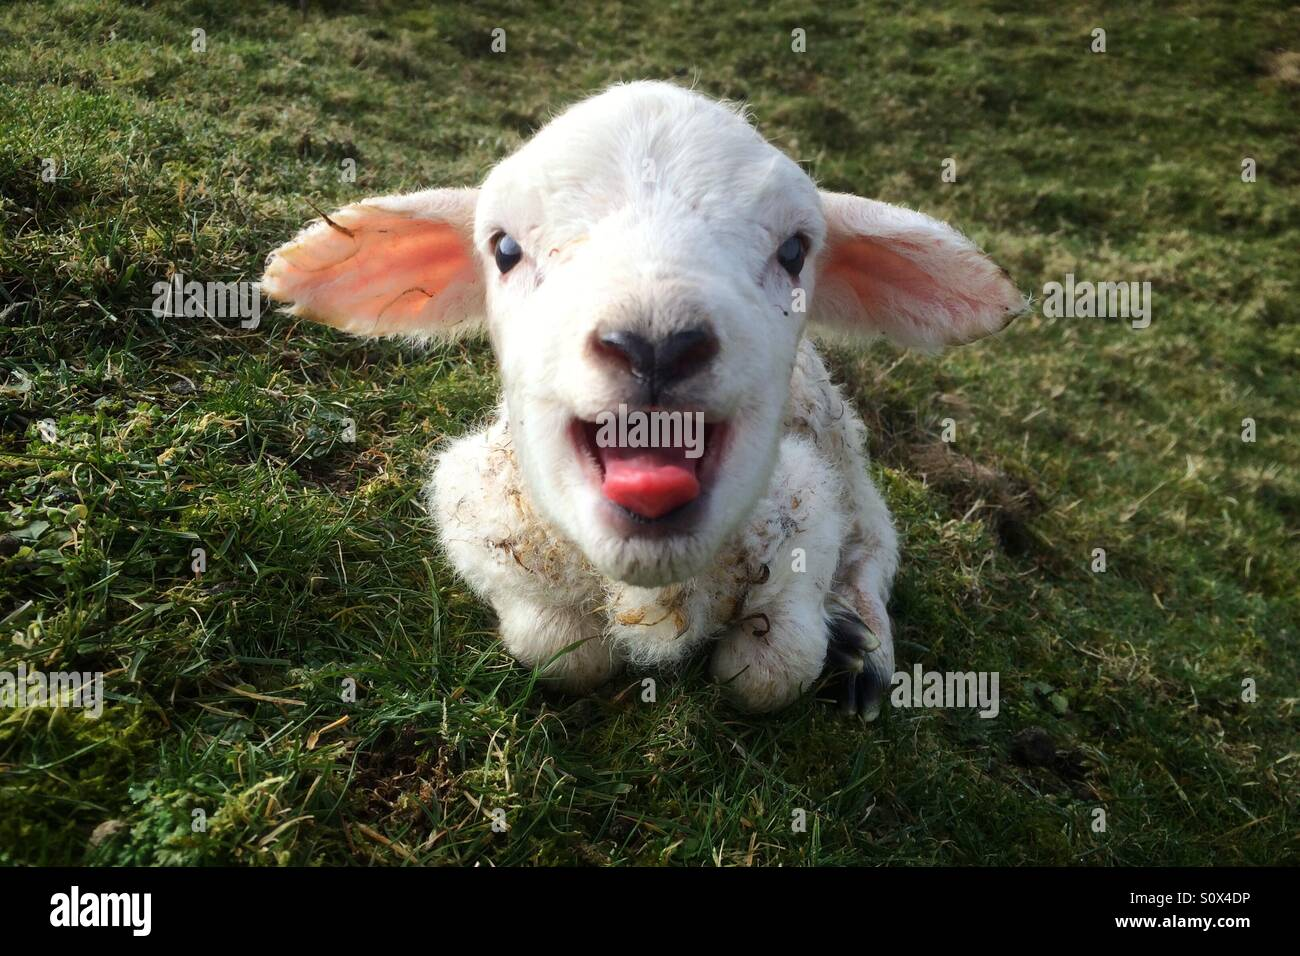 A new born lamb bleats for its mother on a farm in North Yorkshire. - Stock Image